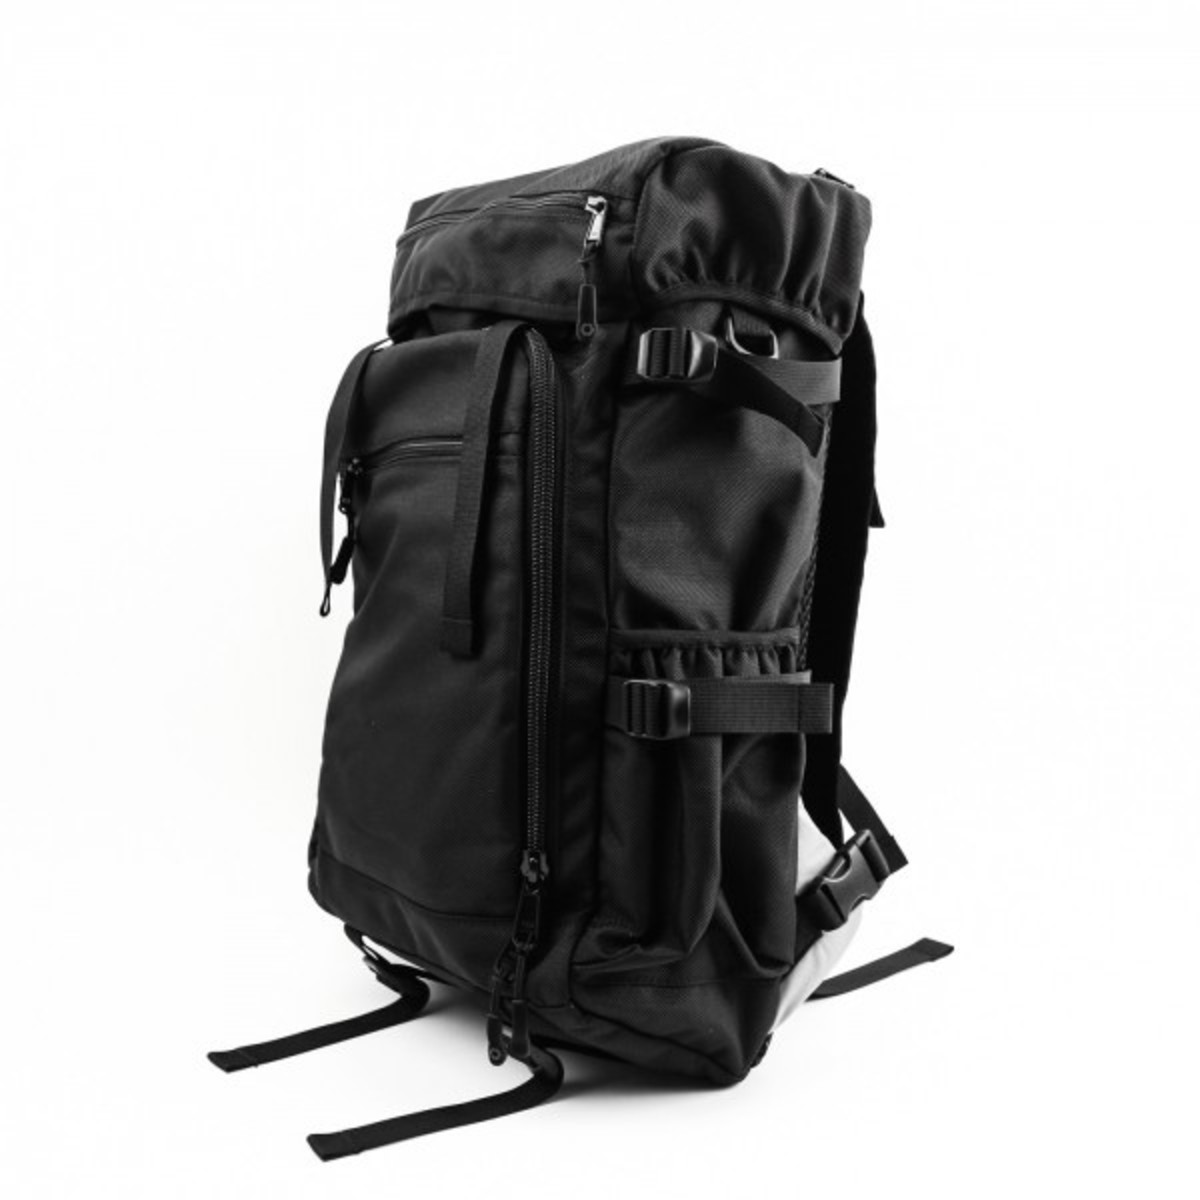 technical-backpacks-perfect-for-the-everyday-02